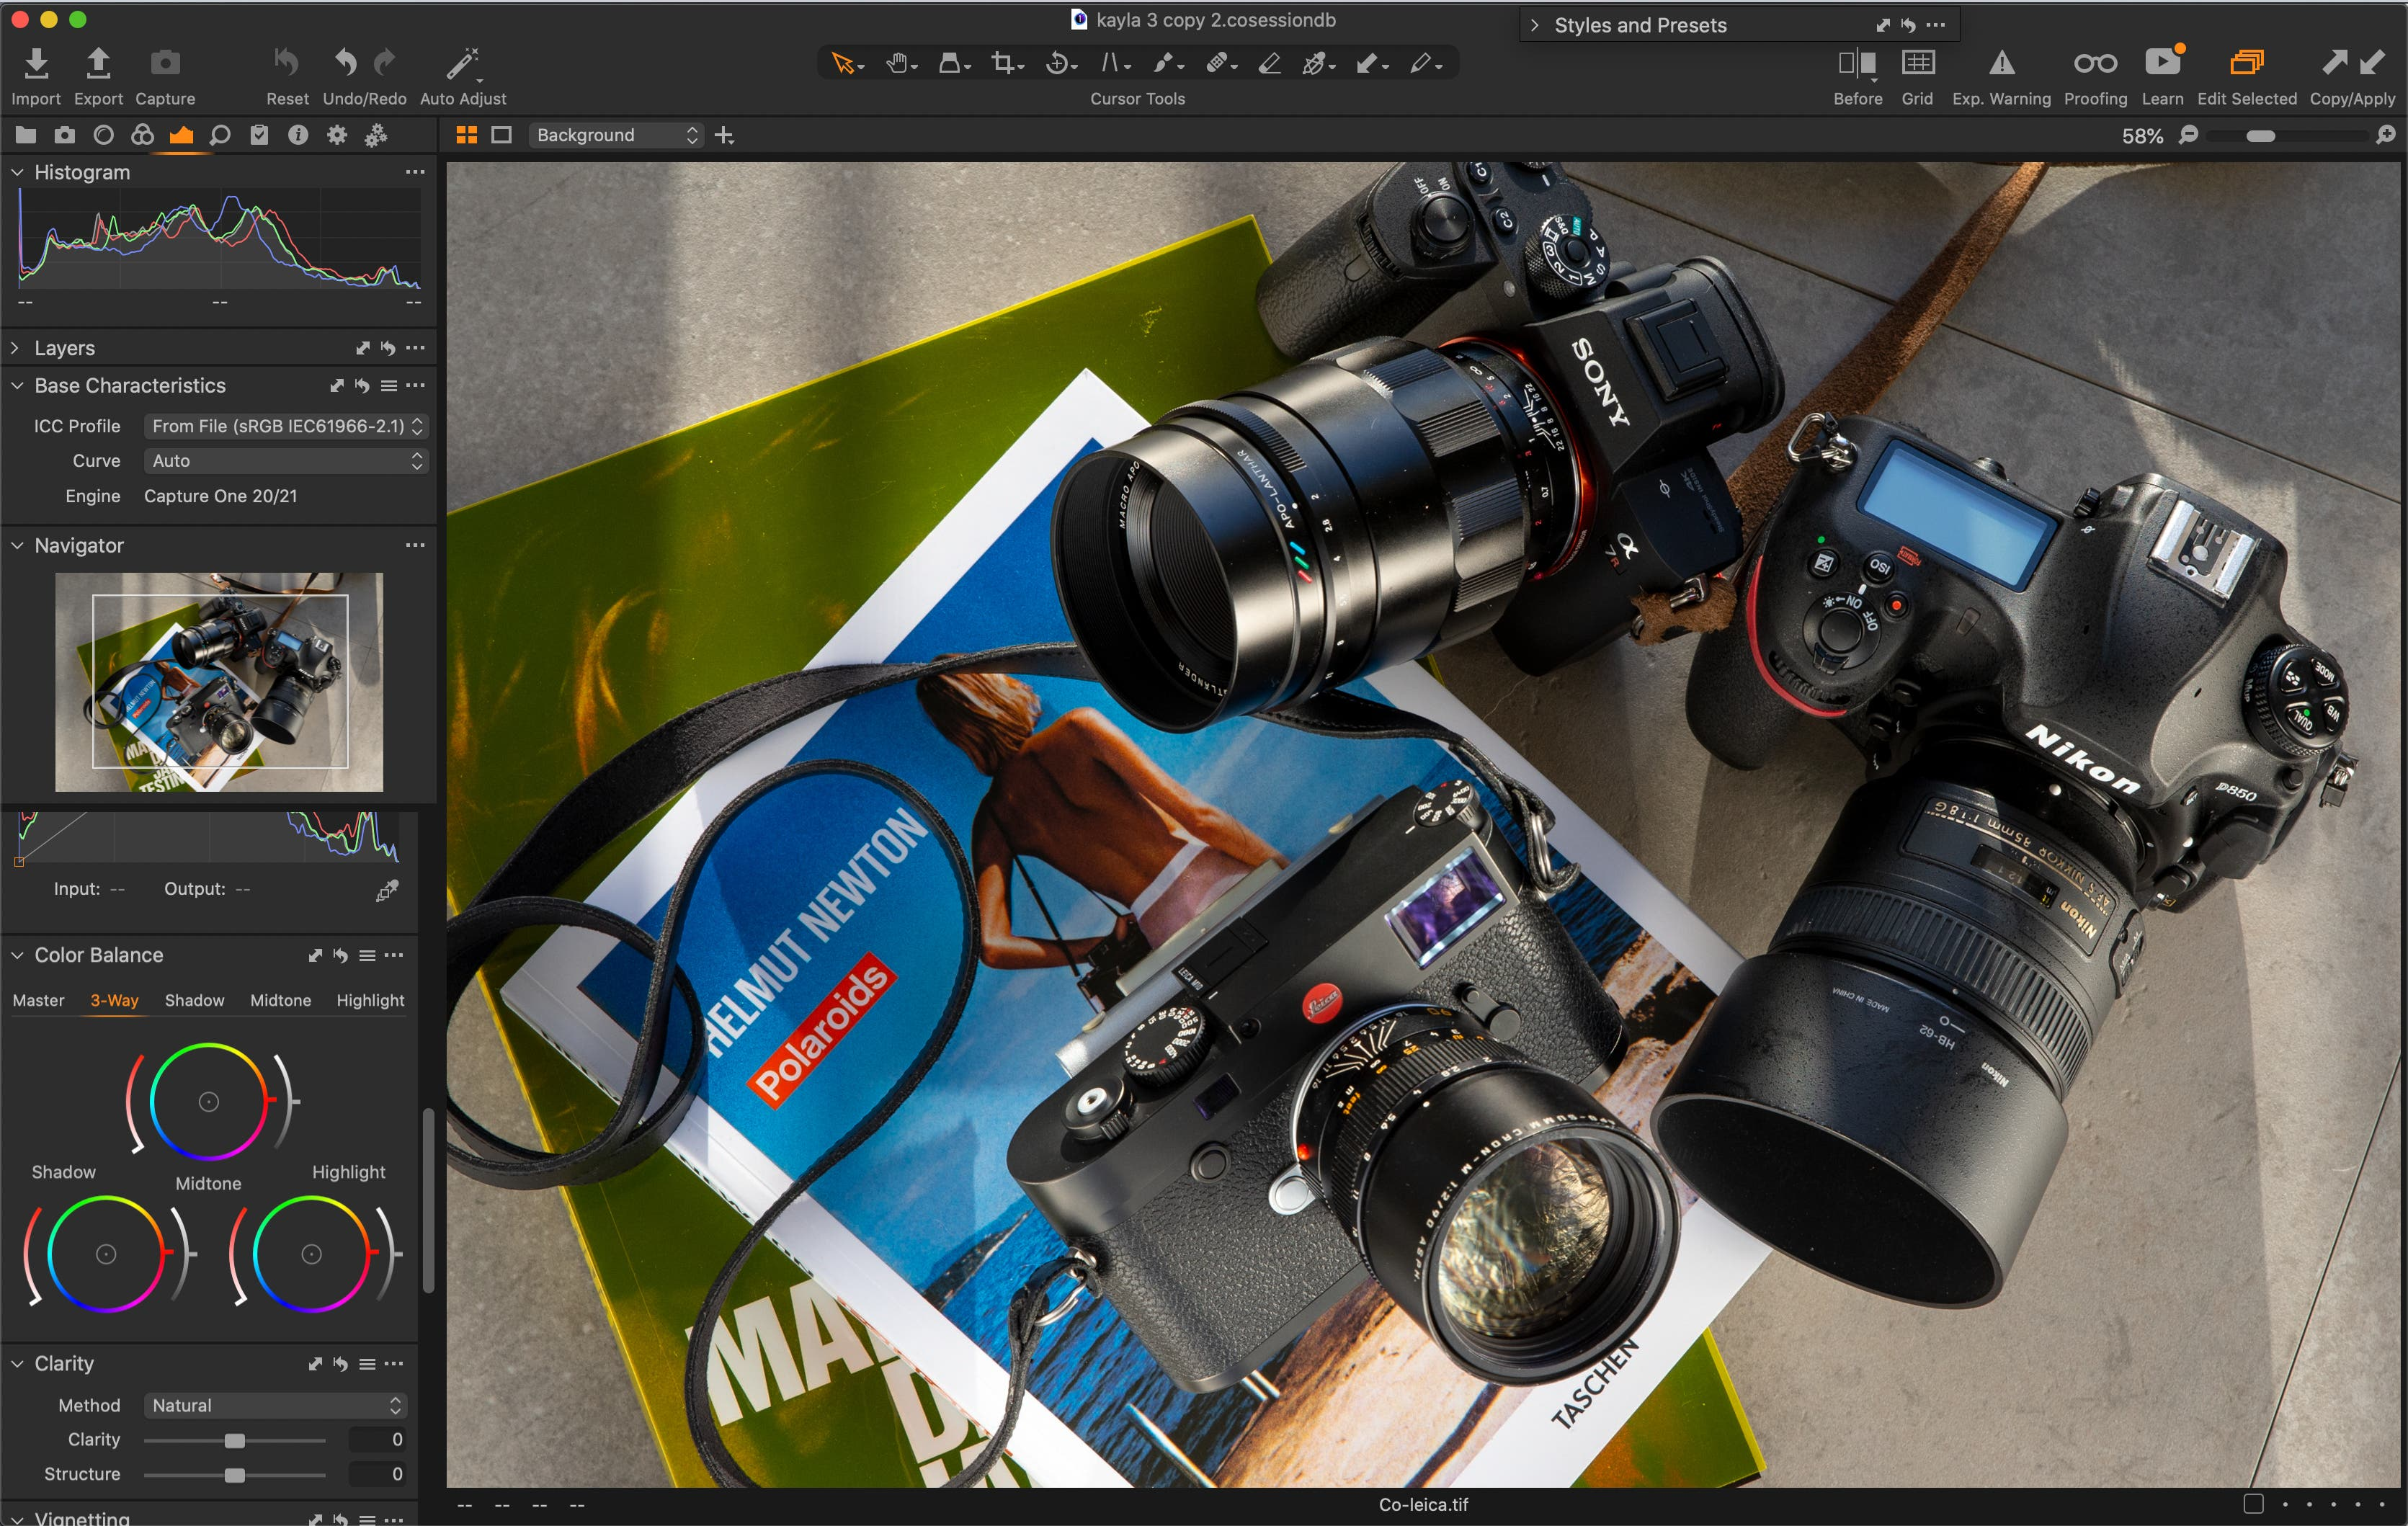 Capture One Has Been Our Standard for Years. And It Just Got Better